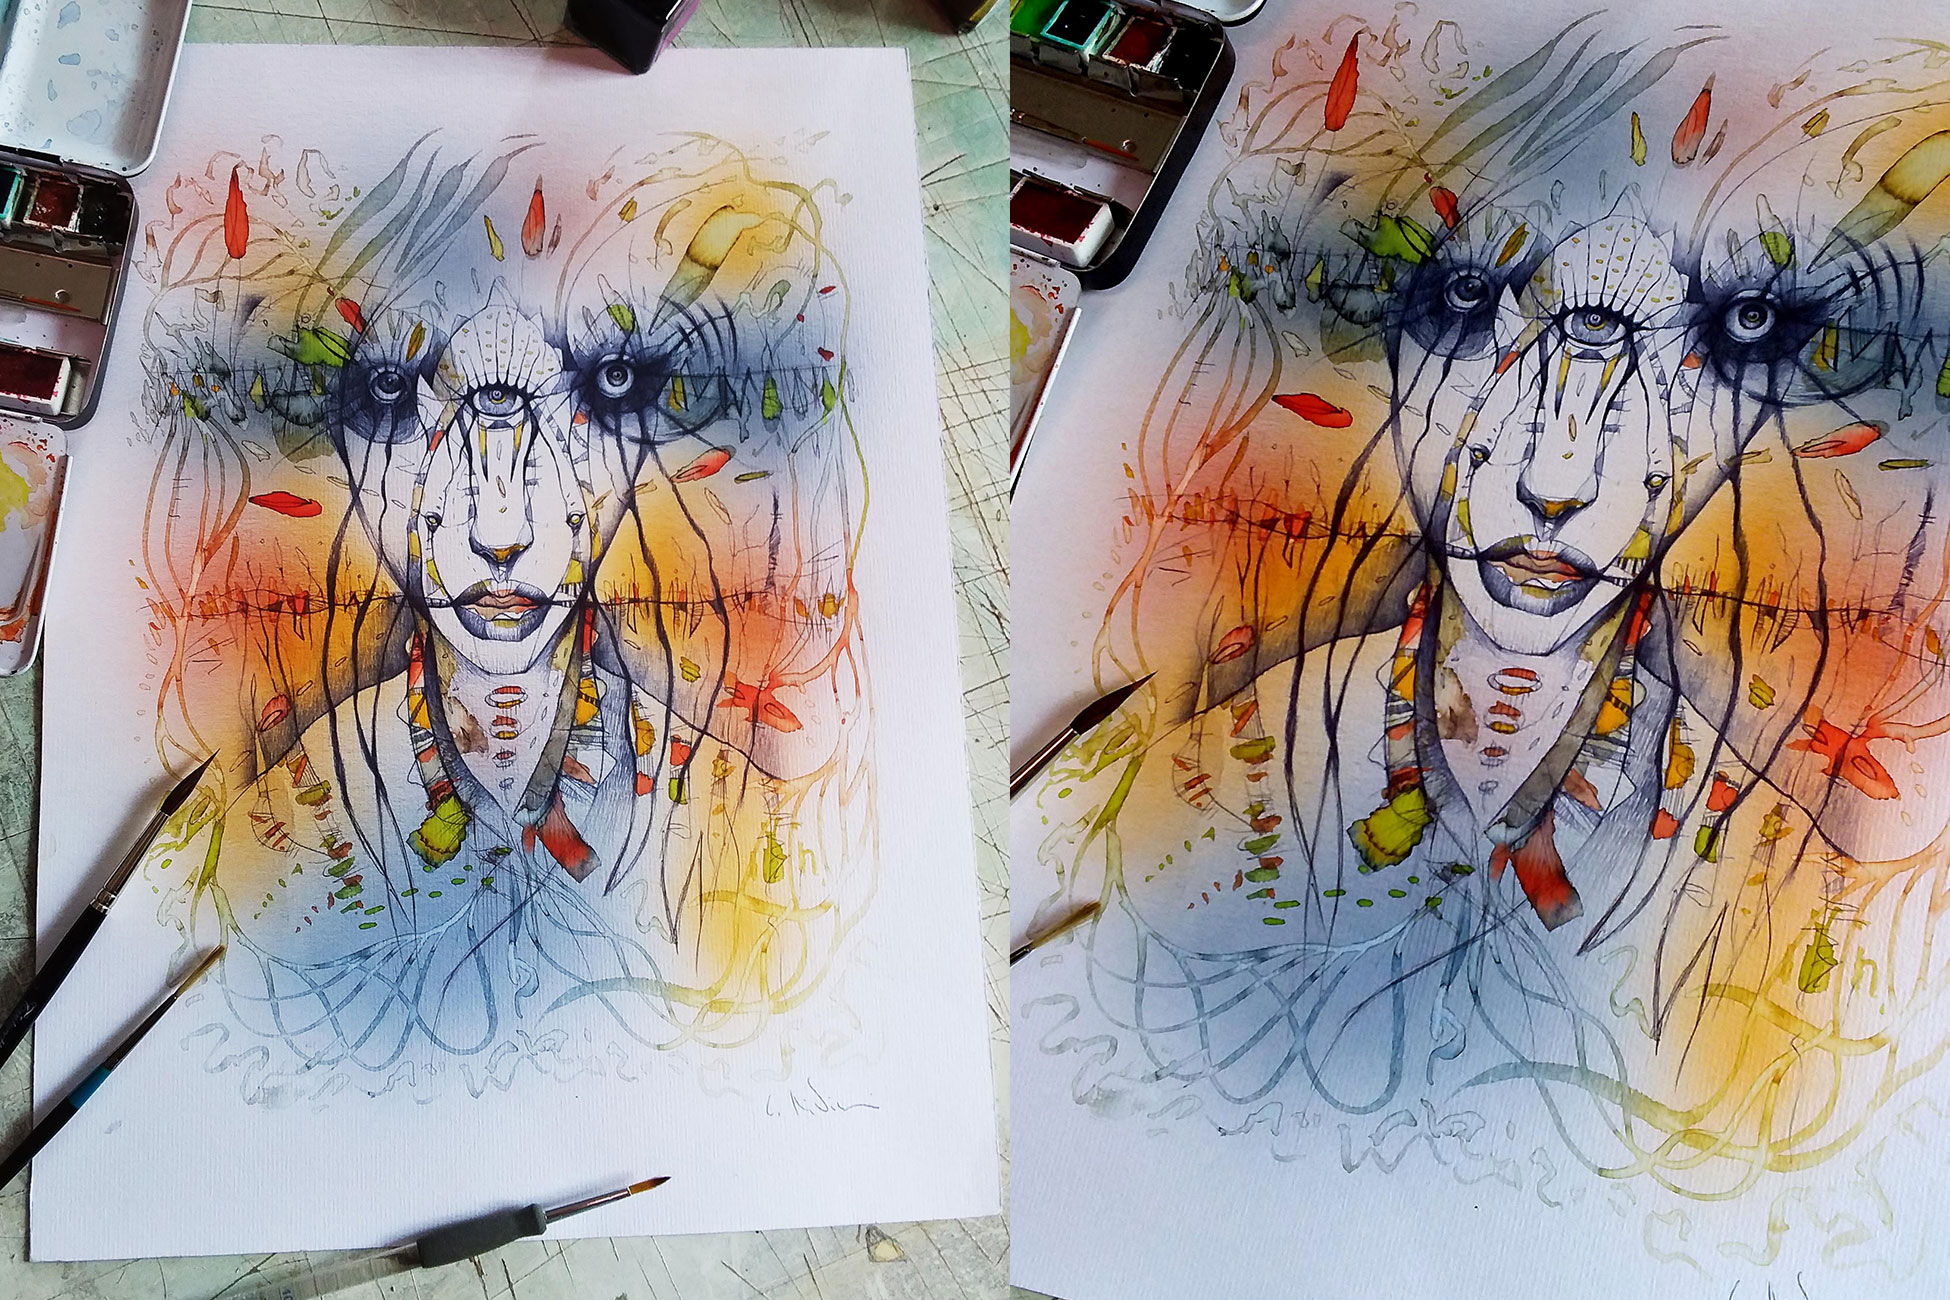 TRICLOPE watercolors A3 size Euro 200